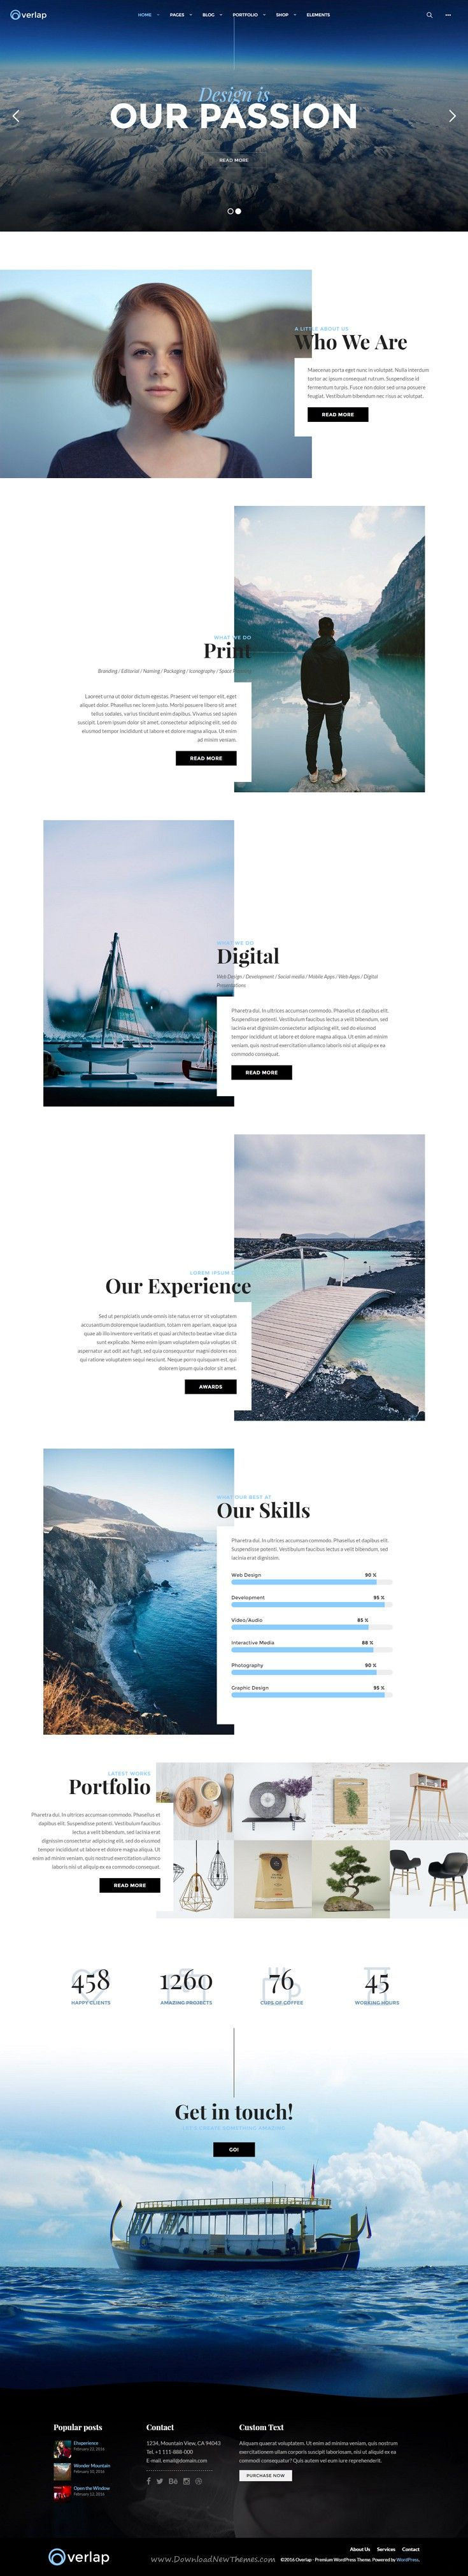 Overlap comes with unique layout designs for showing your creative portfolios, this WordPress theme includes smart theme options so you can easily customize every aspect of your site with just a few clicks. Download Now➝ http://themeforest.net/item/overlap-high-performance-wordpress-theme/15344205?ref=Datasa